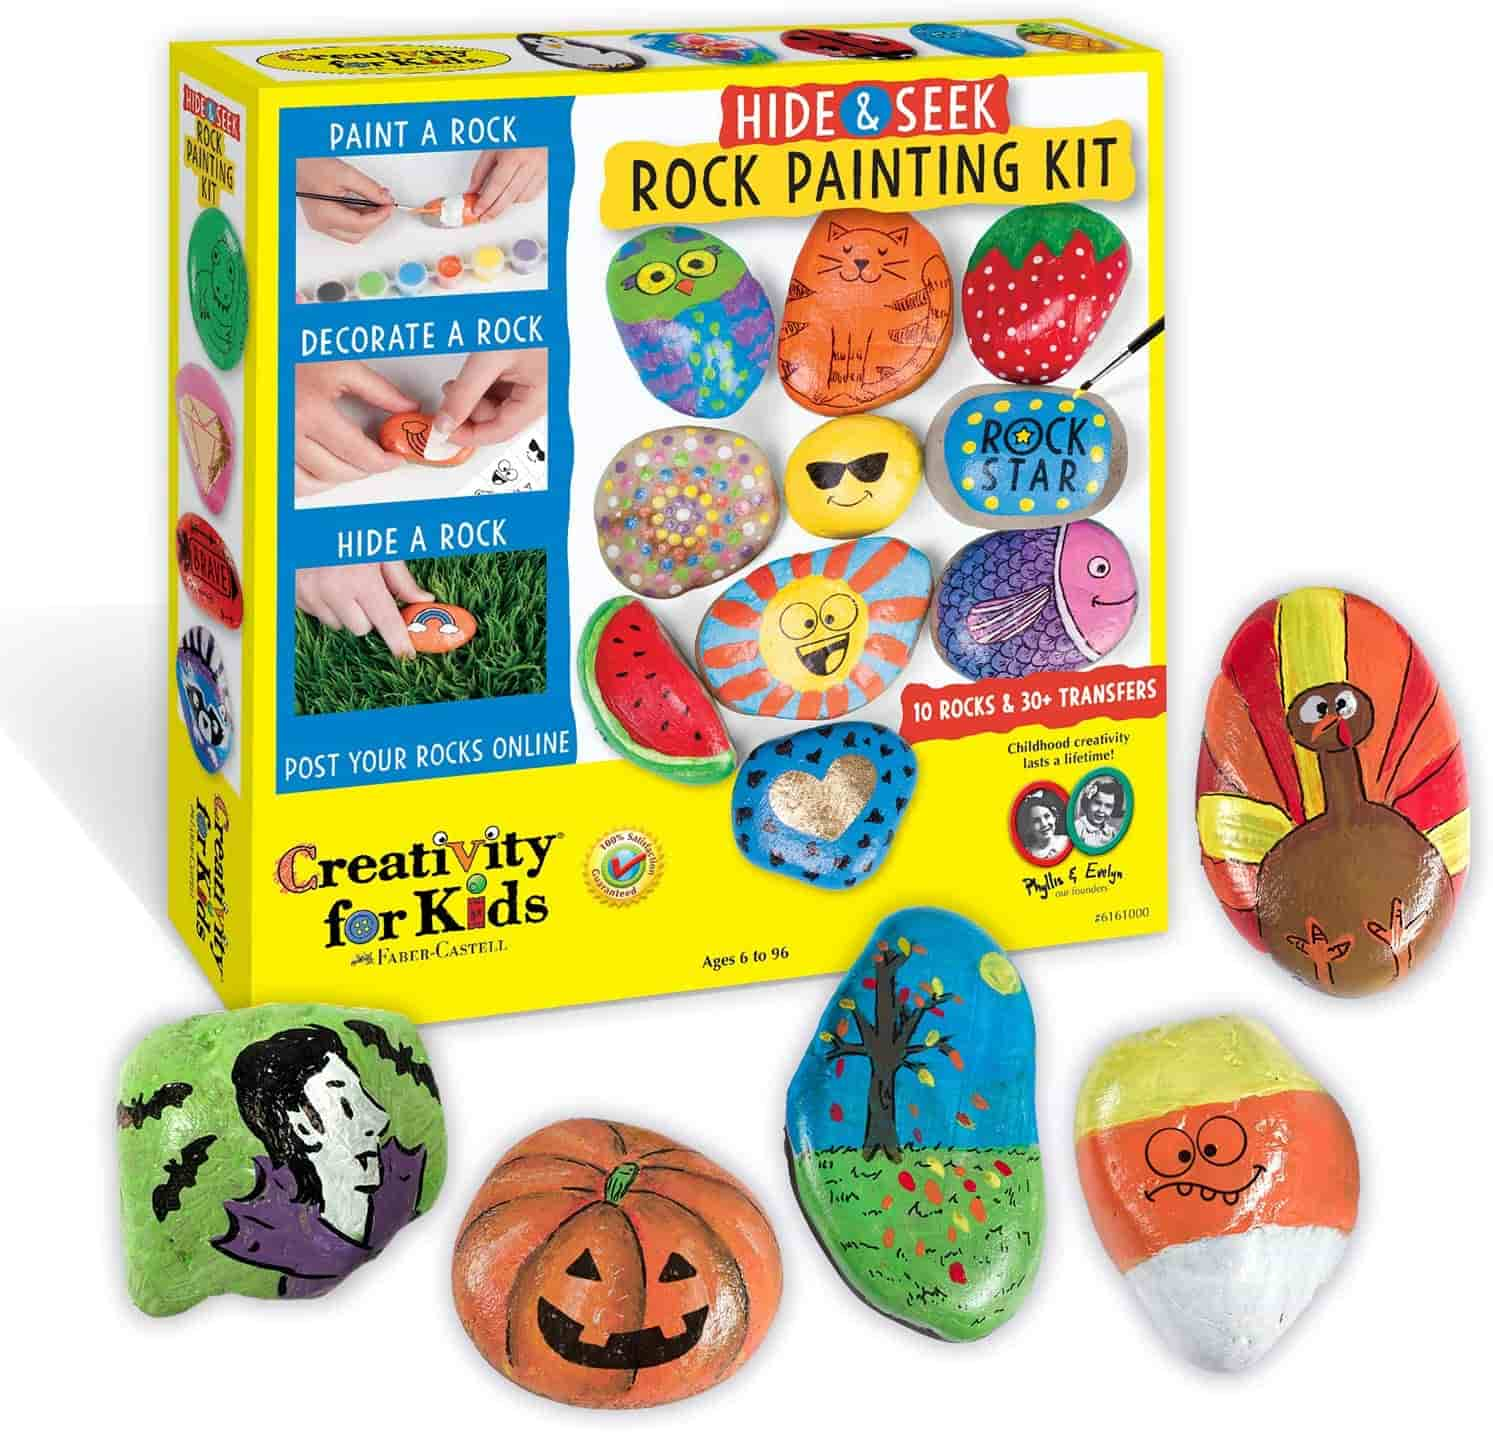 Rock painting activity for 7 years old kids.